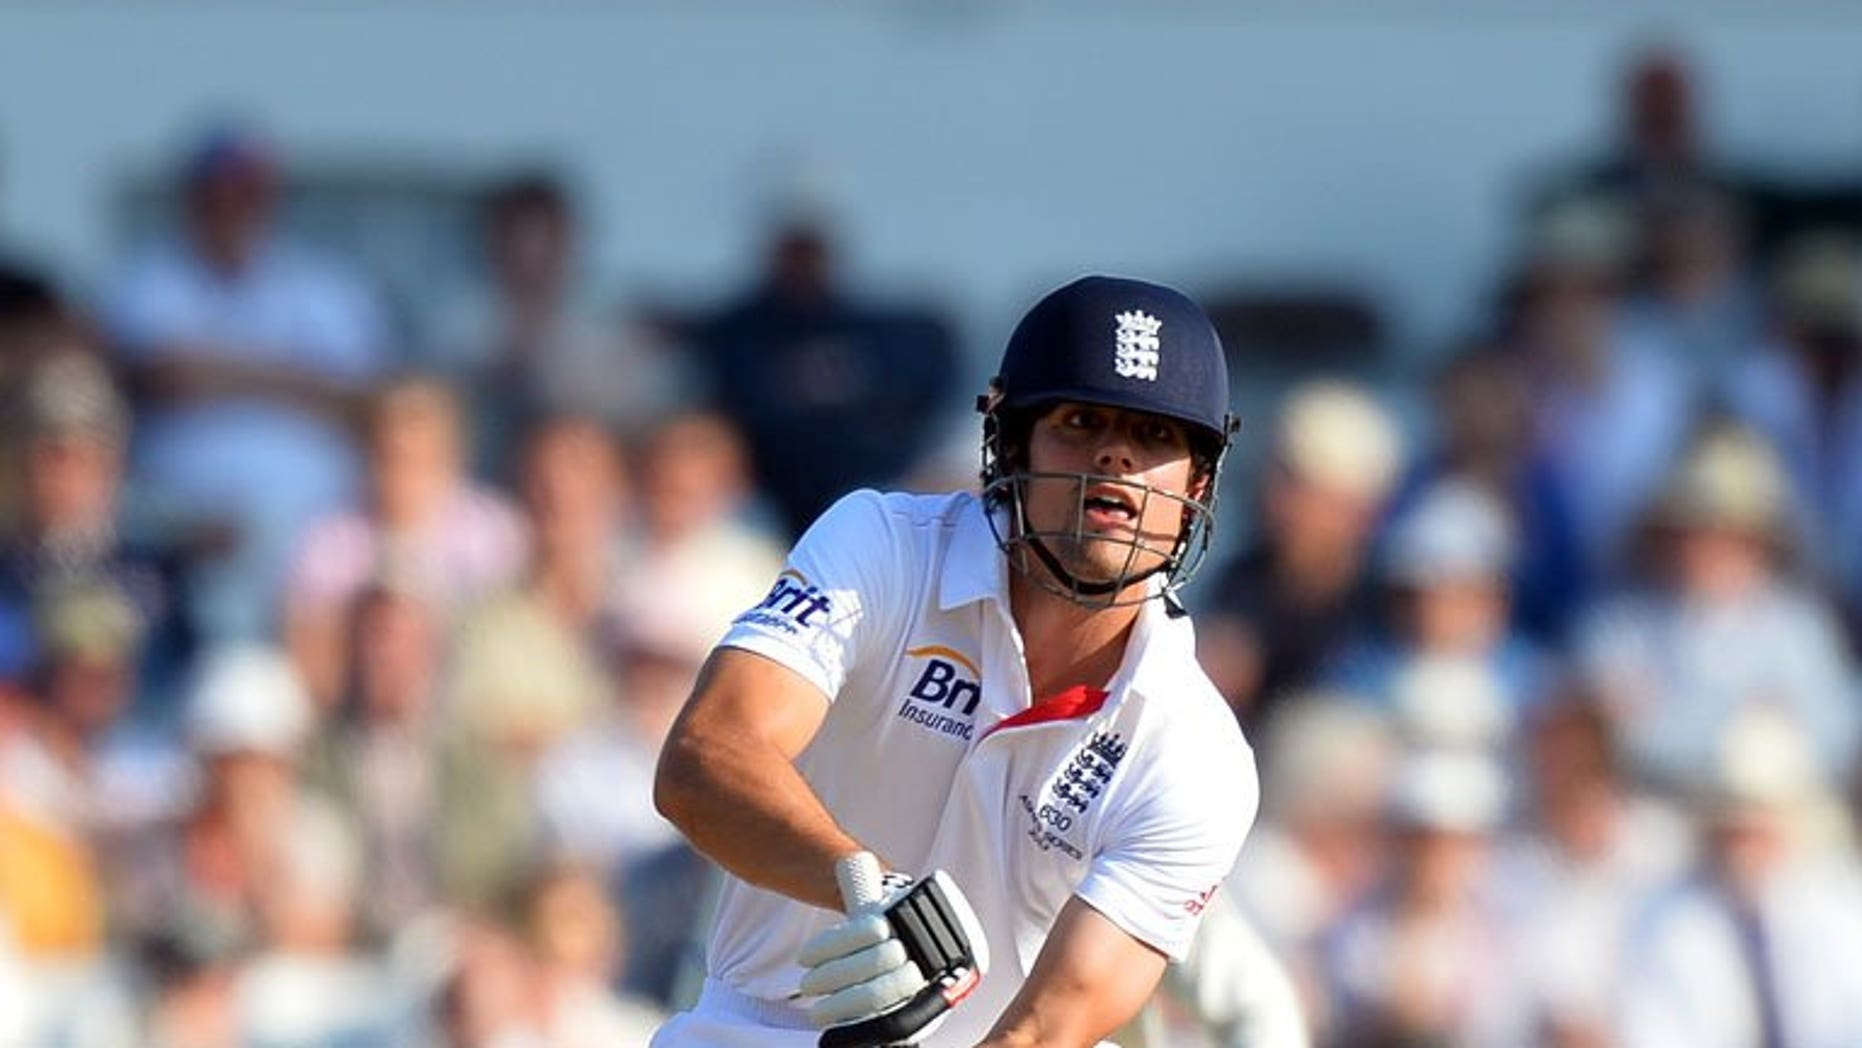 England's Alastair Cook plays a shot during the 2013 Ashes series between England and Australia in Nottingham on July 11, 2013. England on named an unchanged squad to face Australia in the second Ashes Test, starting at Lord's later this week.